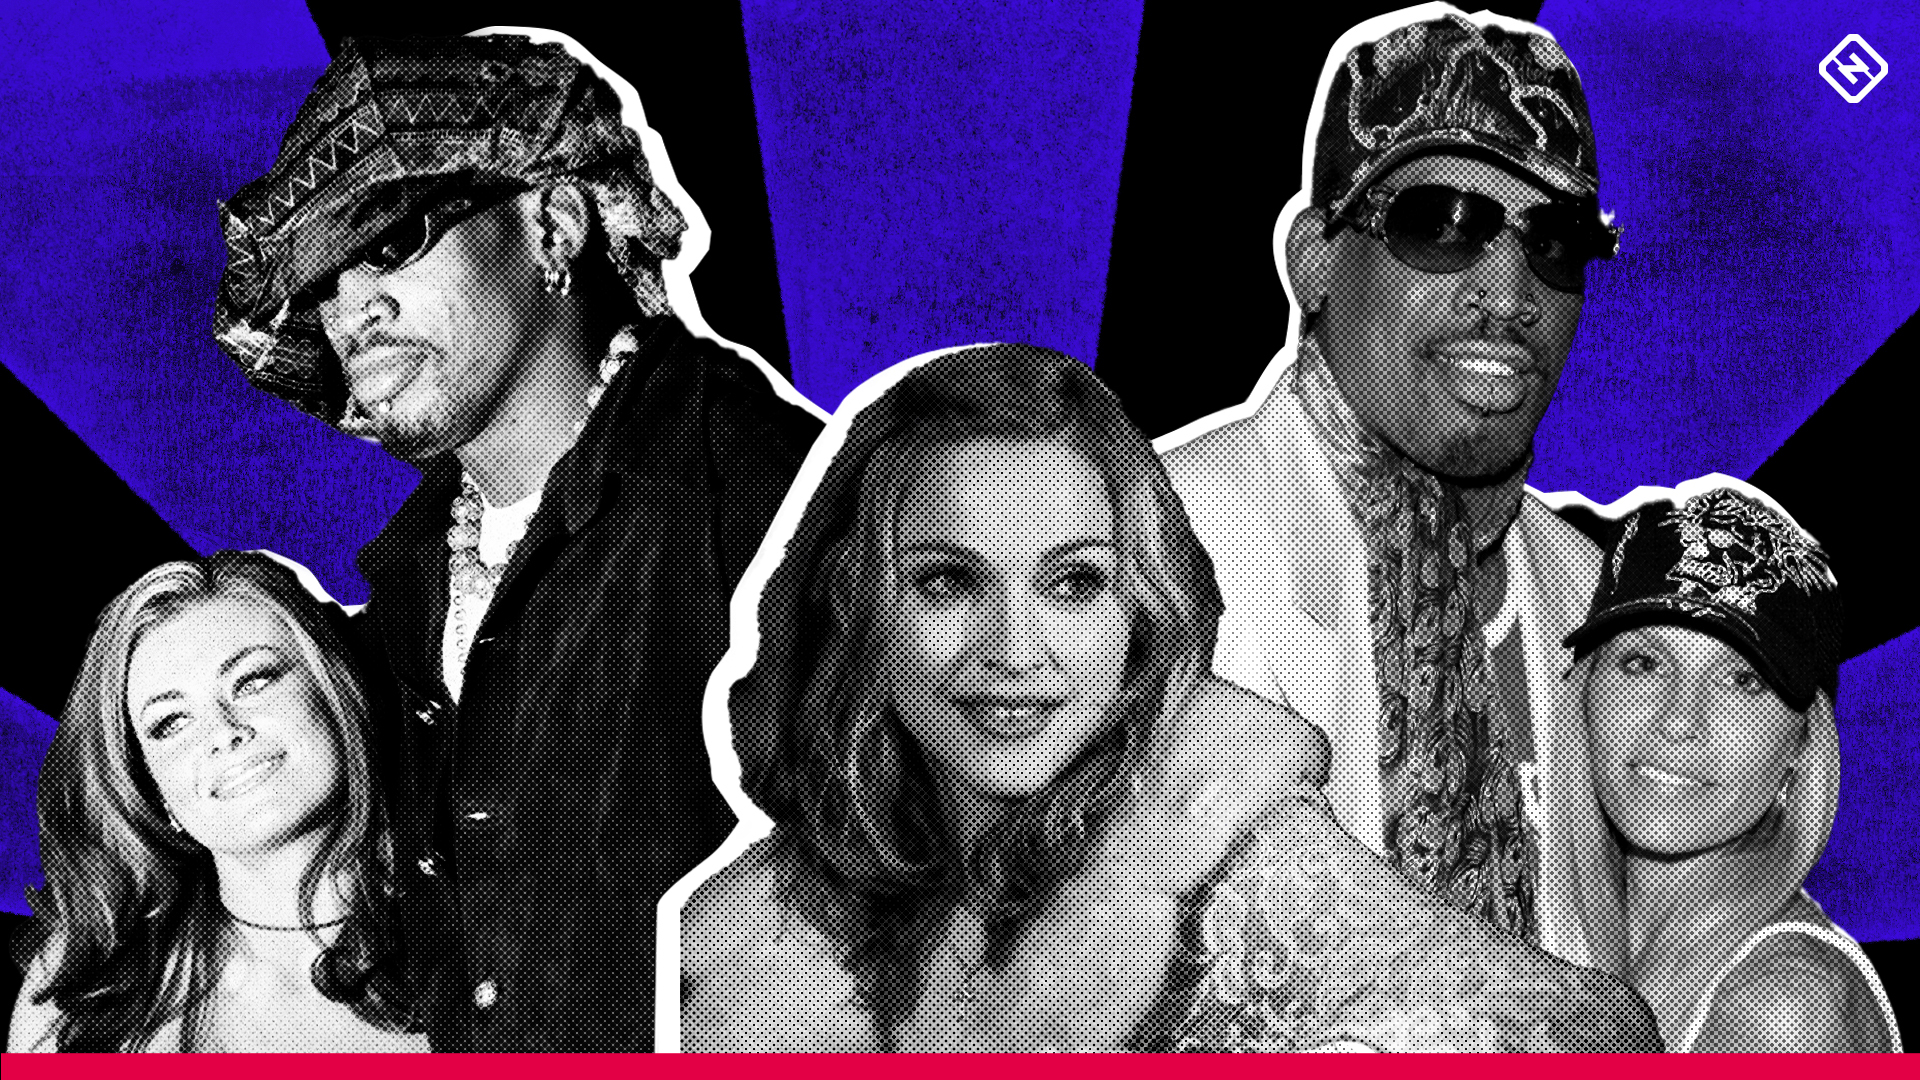 Dennis Rodman relationship timeline: What we know about famous dating history, from Carmen Electra to marriage